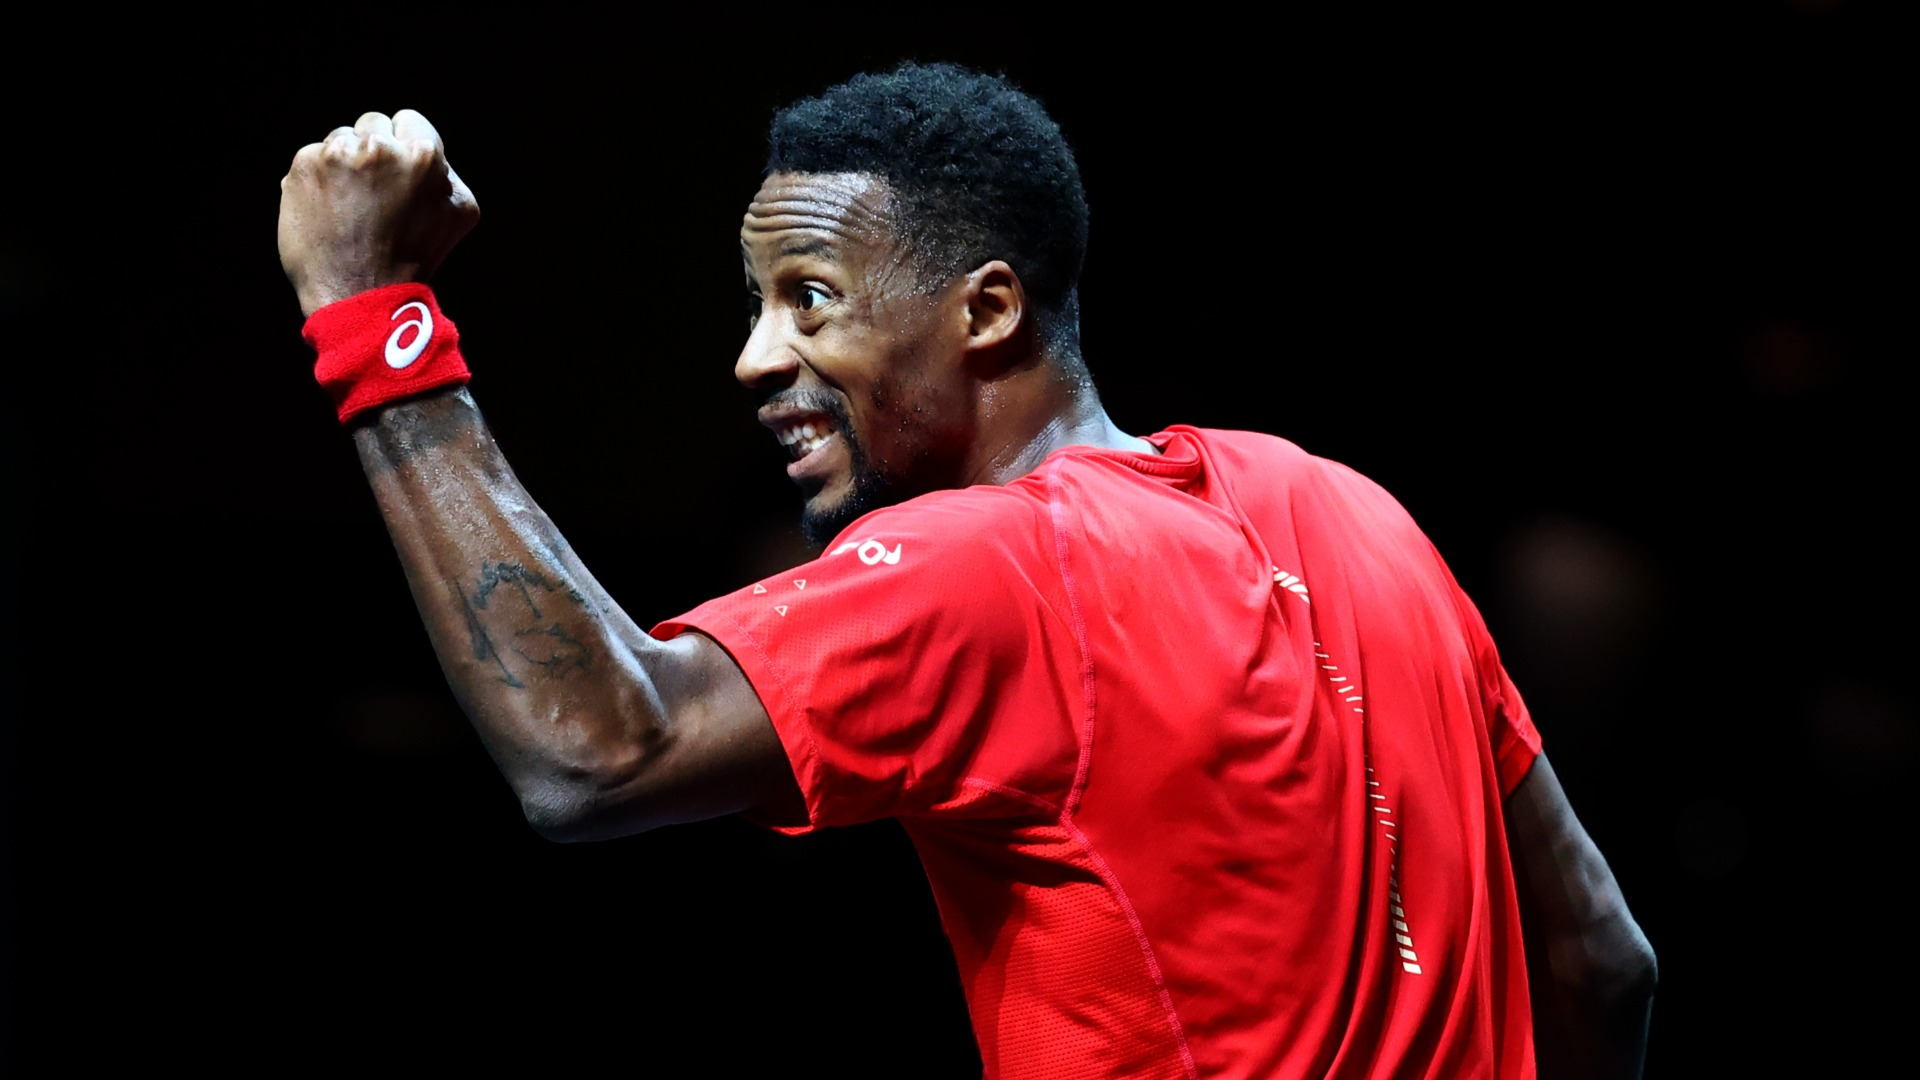 Monfils crushes Auger-Aliassime to retain Rotterdam crown and extend winning run